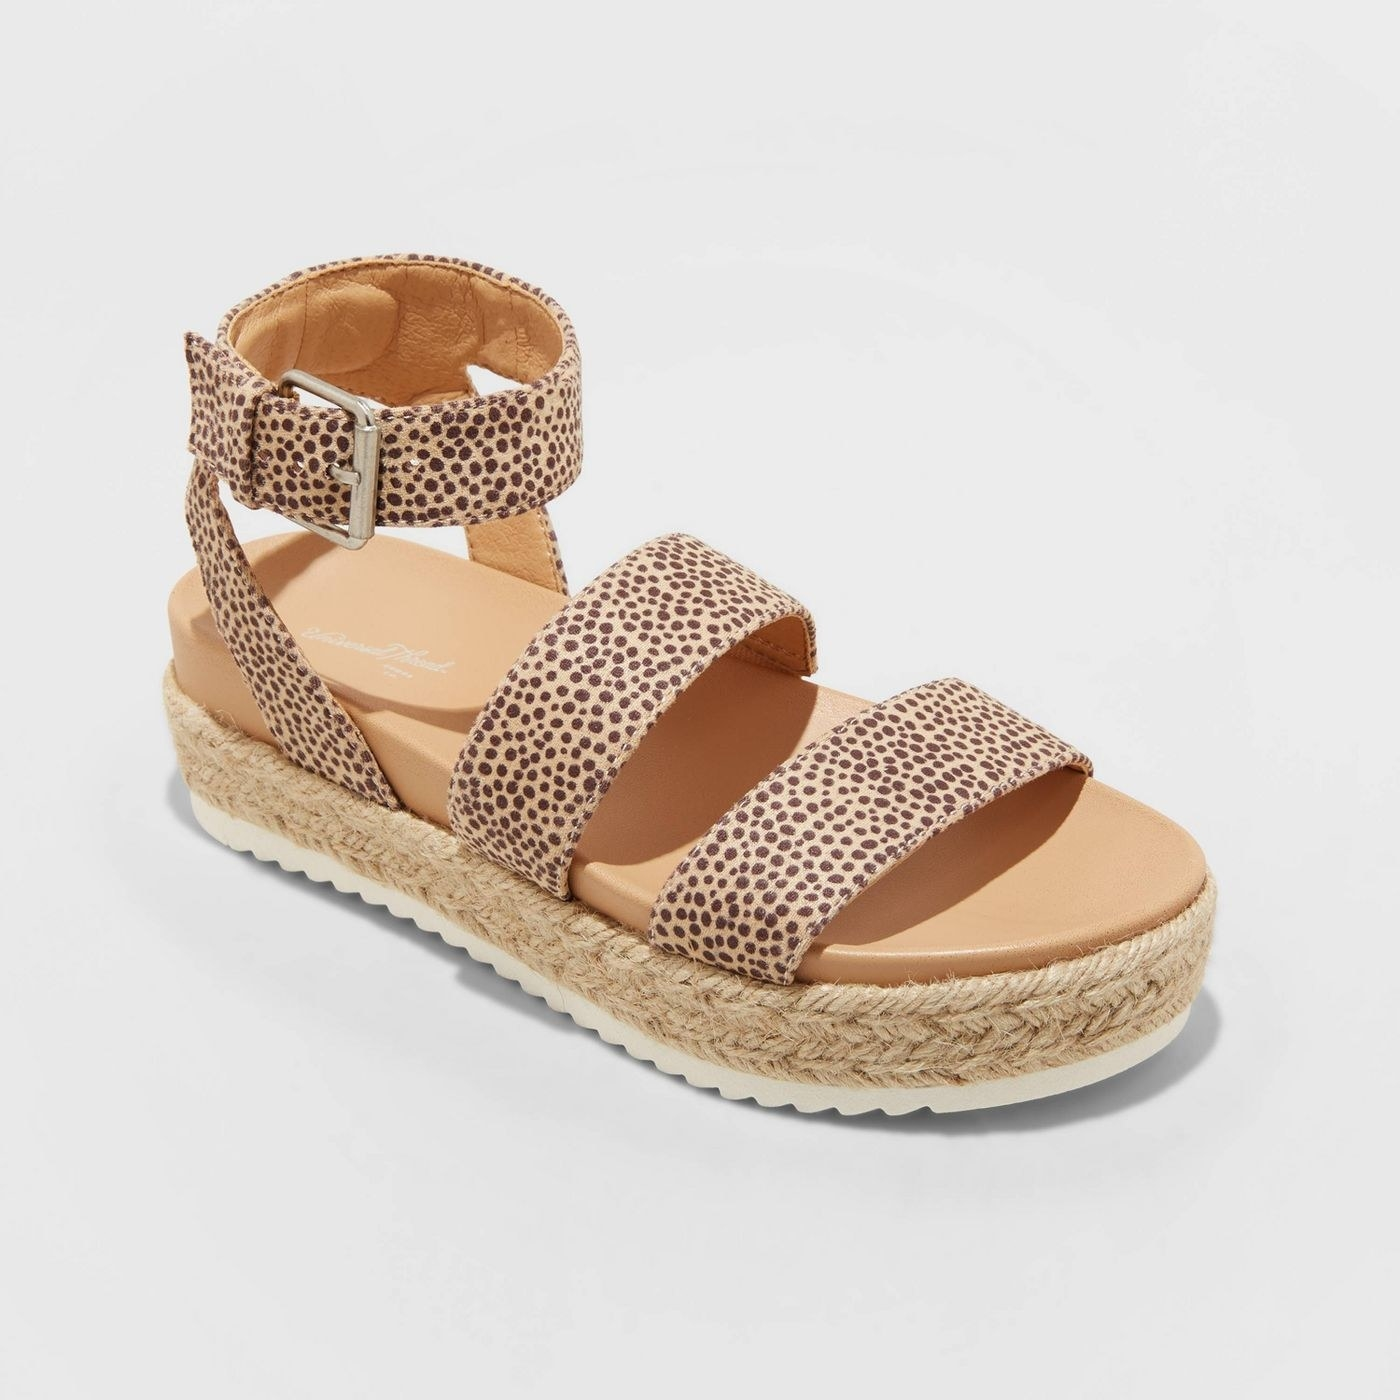 sandals with a roped braided bottom and leopard straps